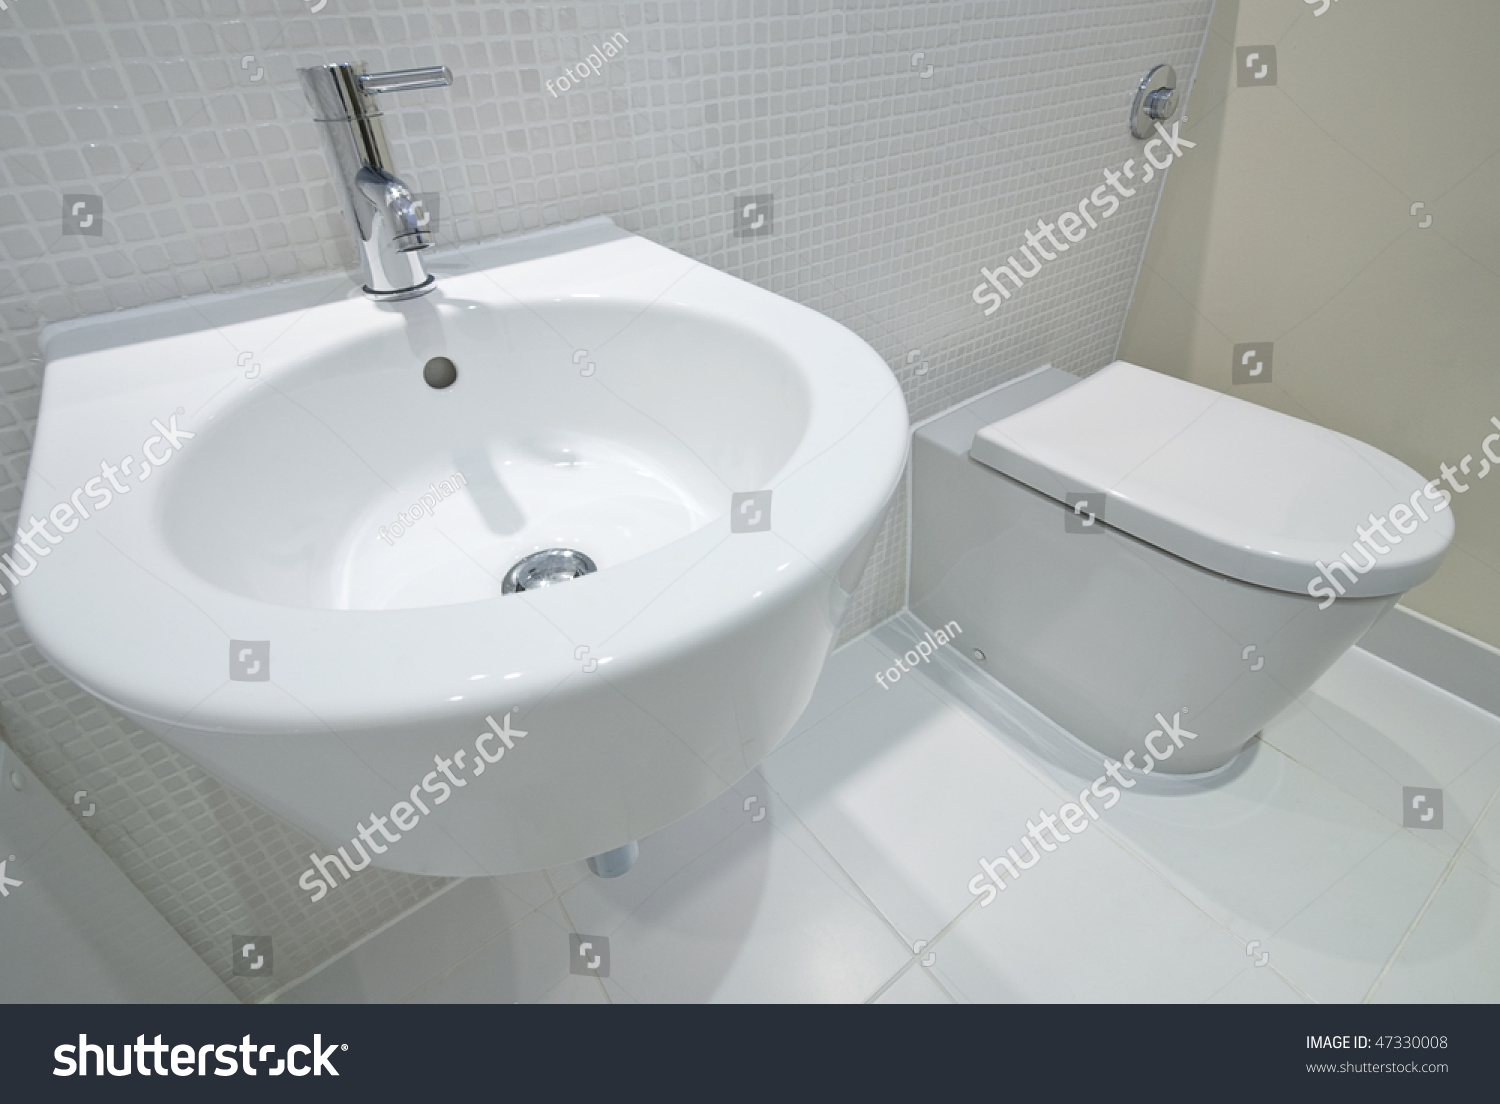 Bathroom Detail With Hand Wash Basin And Toilet With Mosaic Tiles